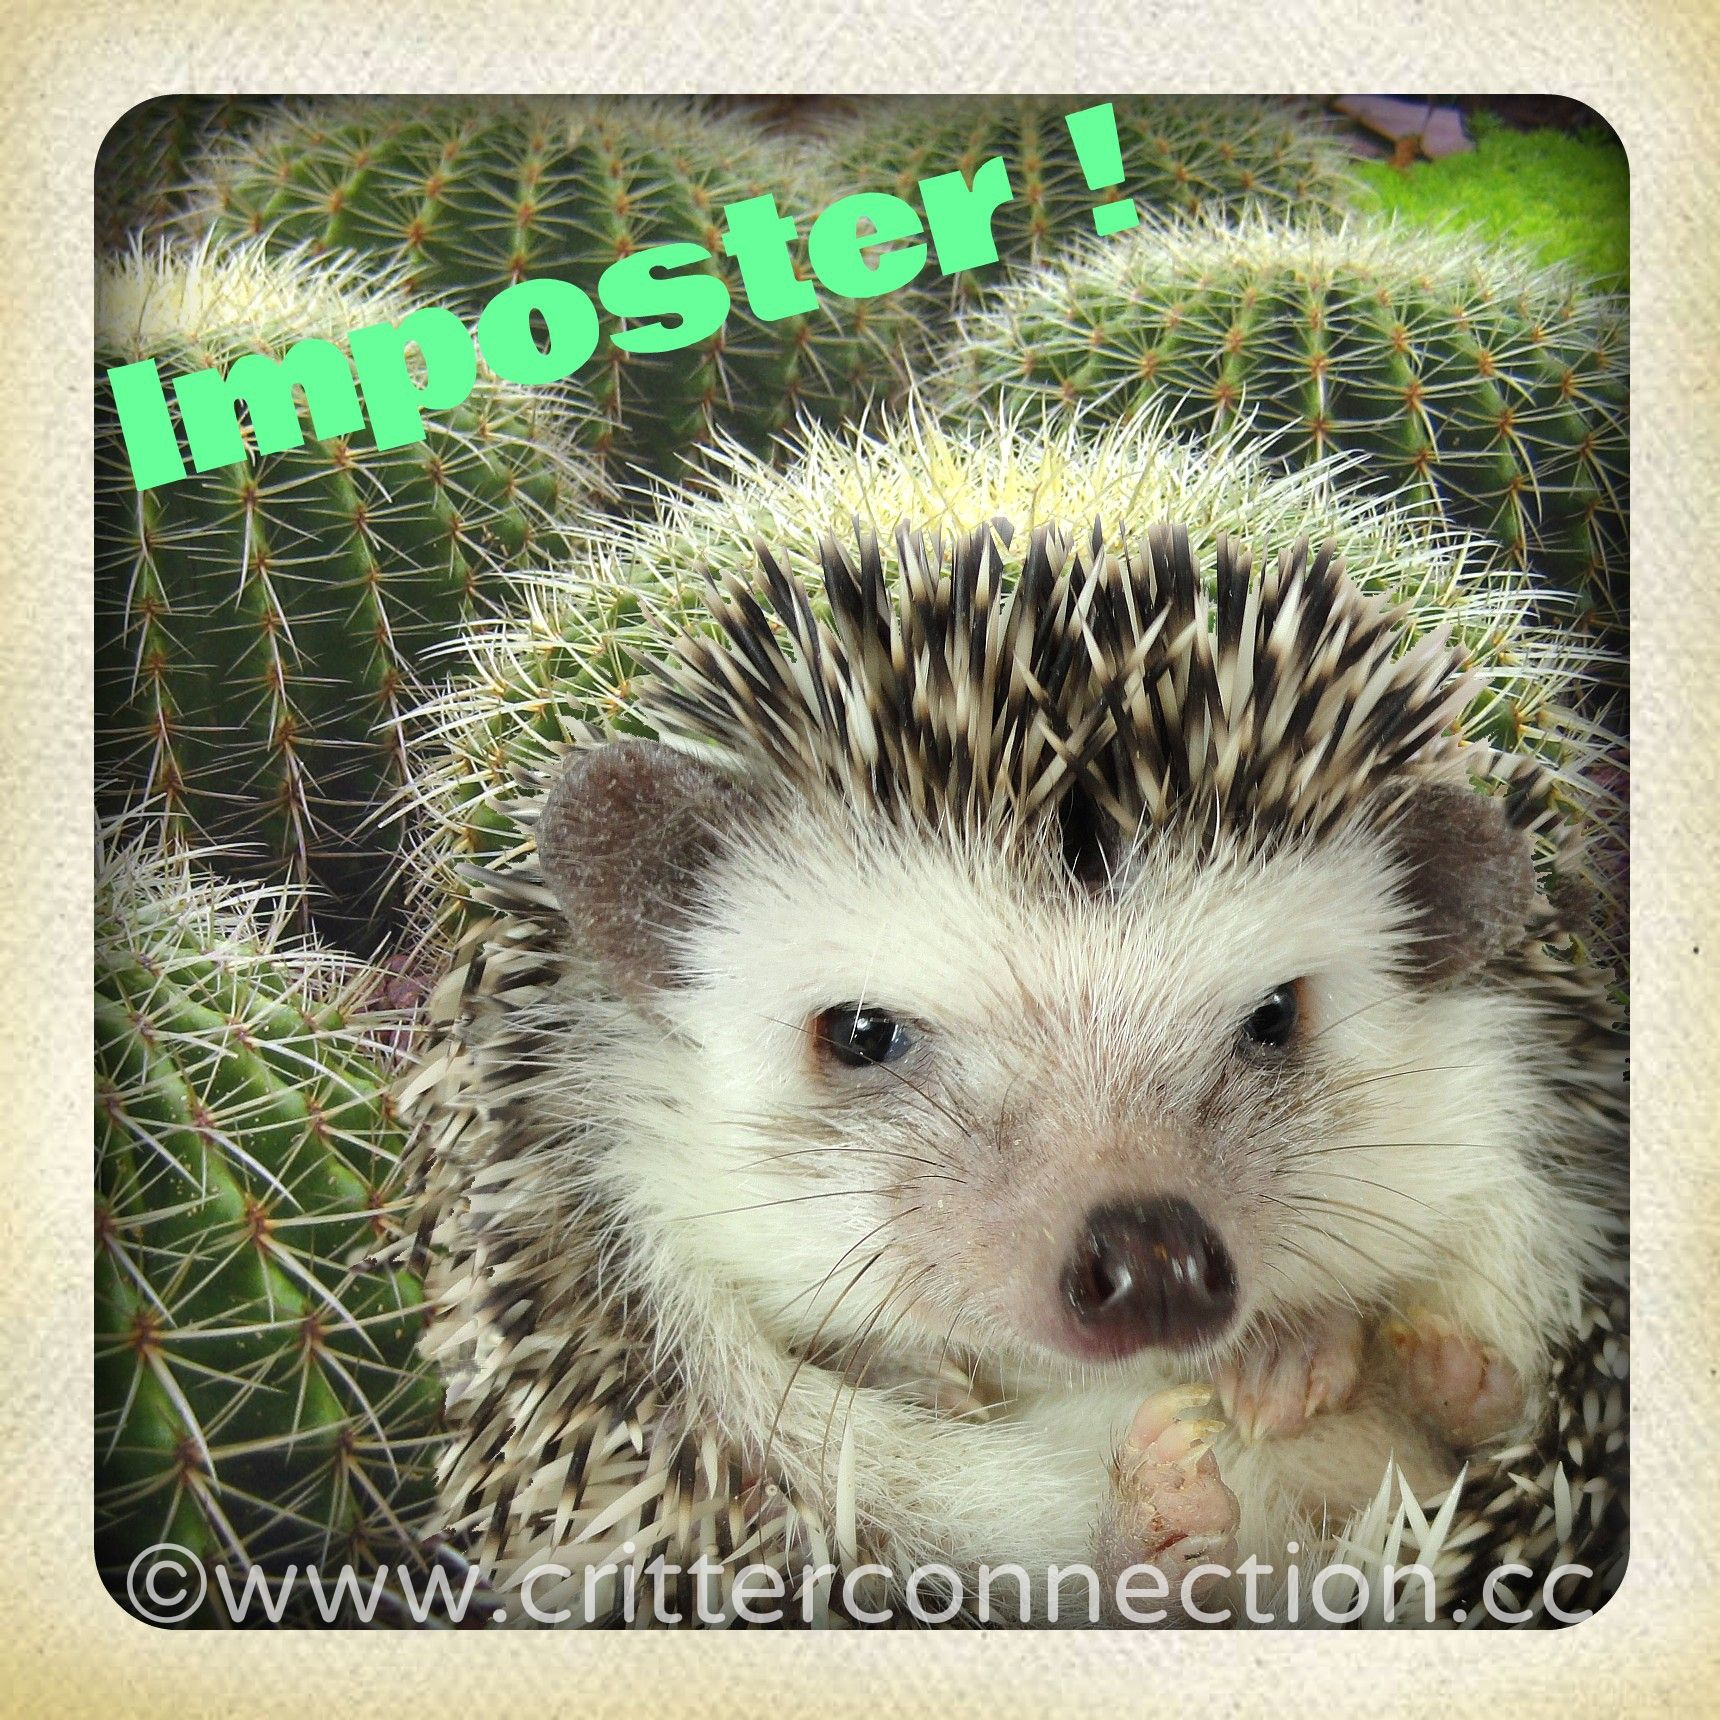 86185dc3b #hedgehog #hedgie #funny #lol #quills #imposter #cute #adorable #cactus